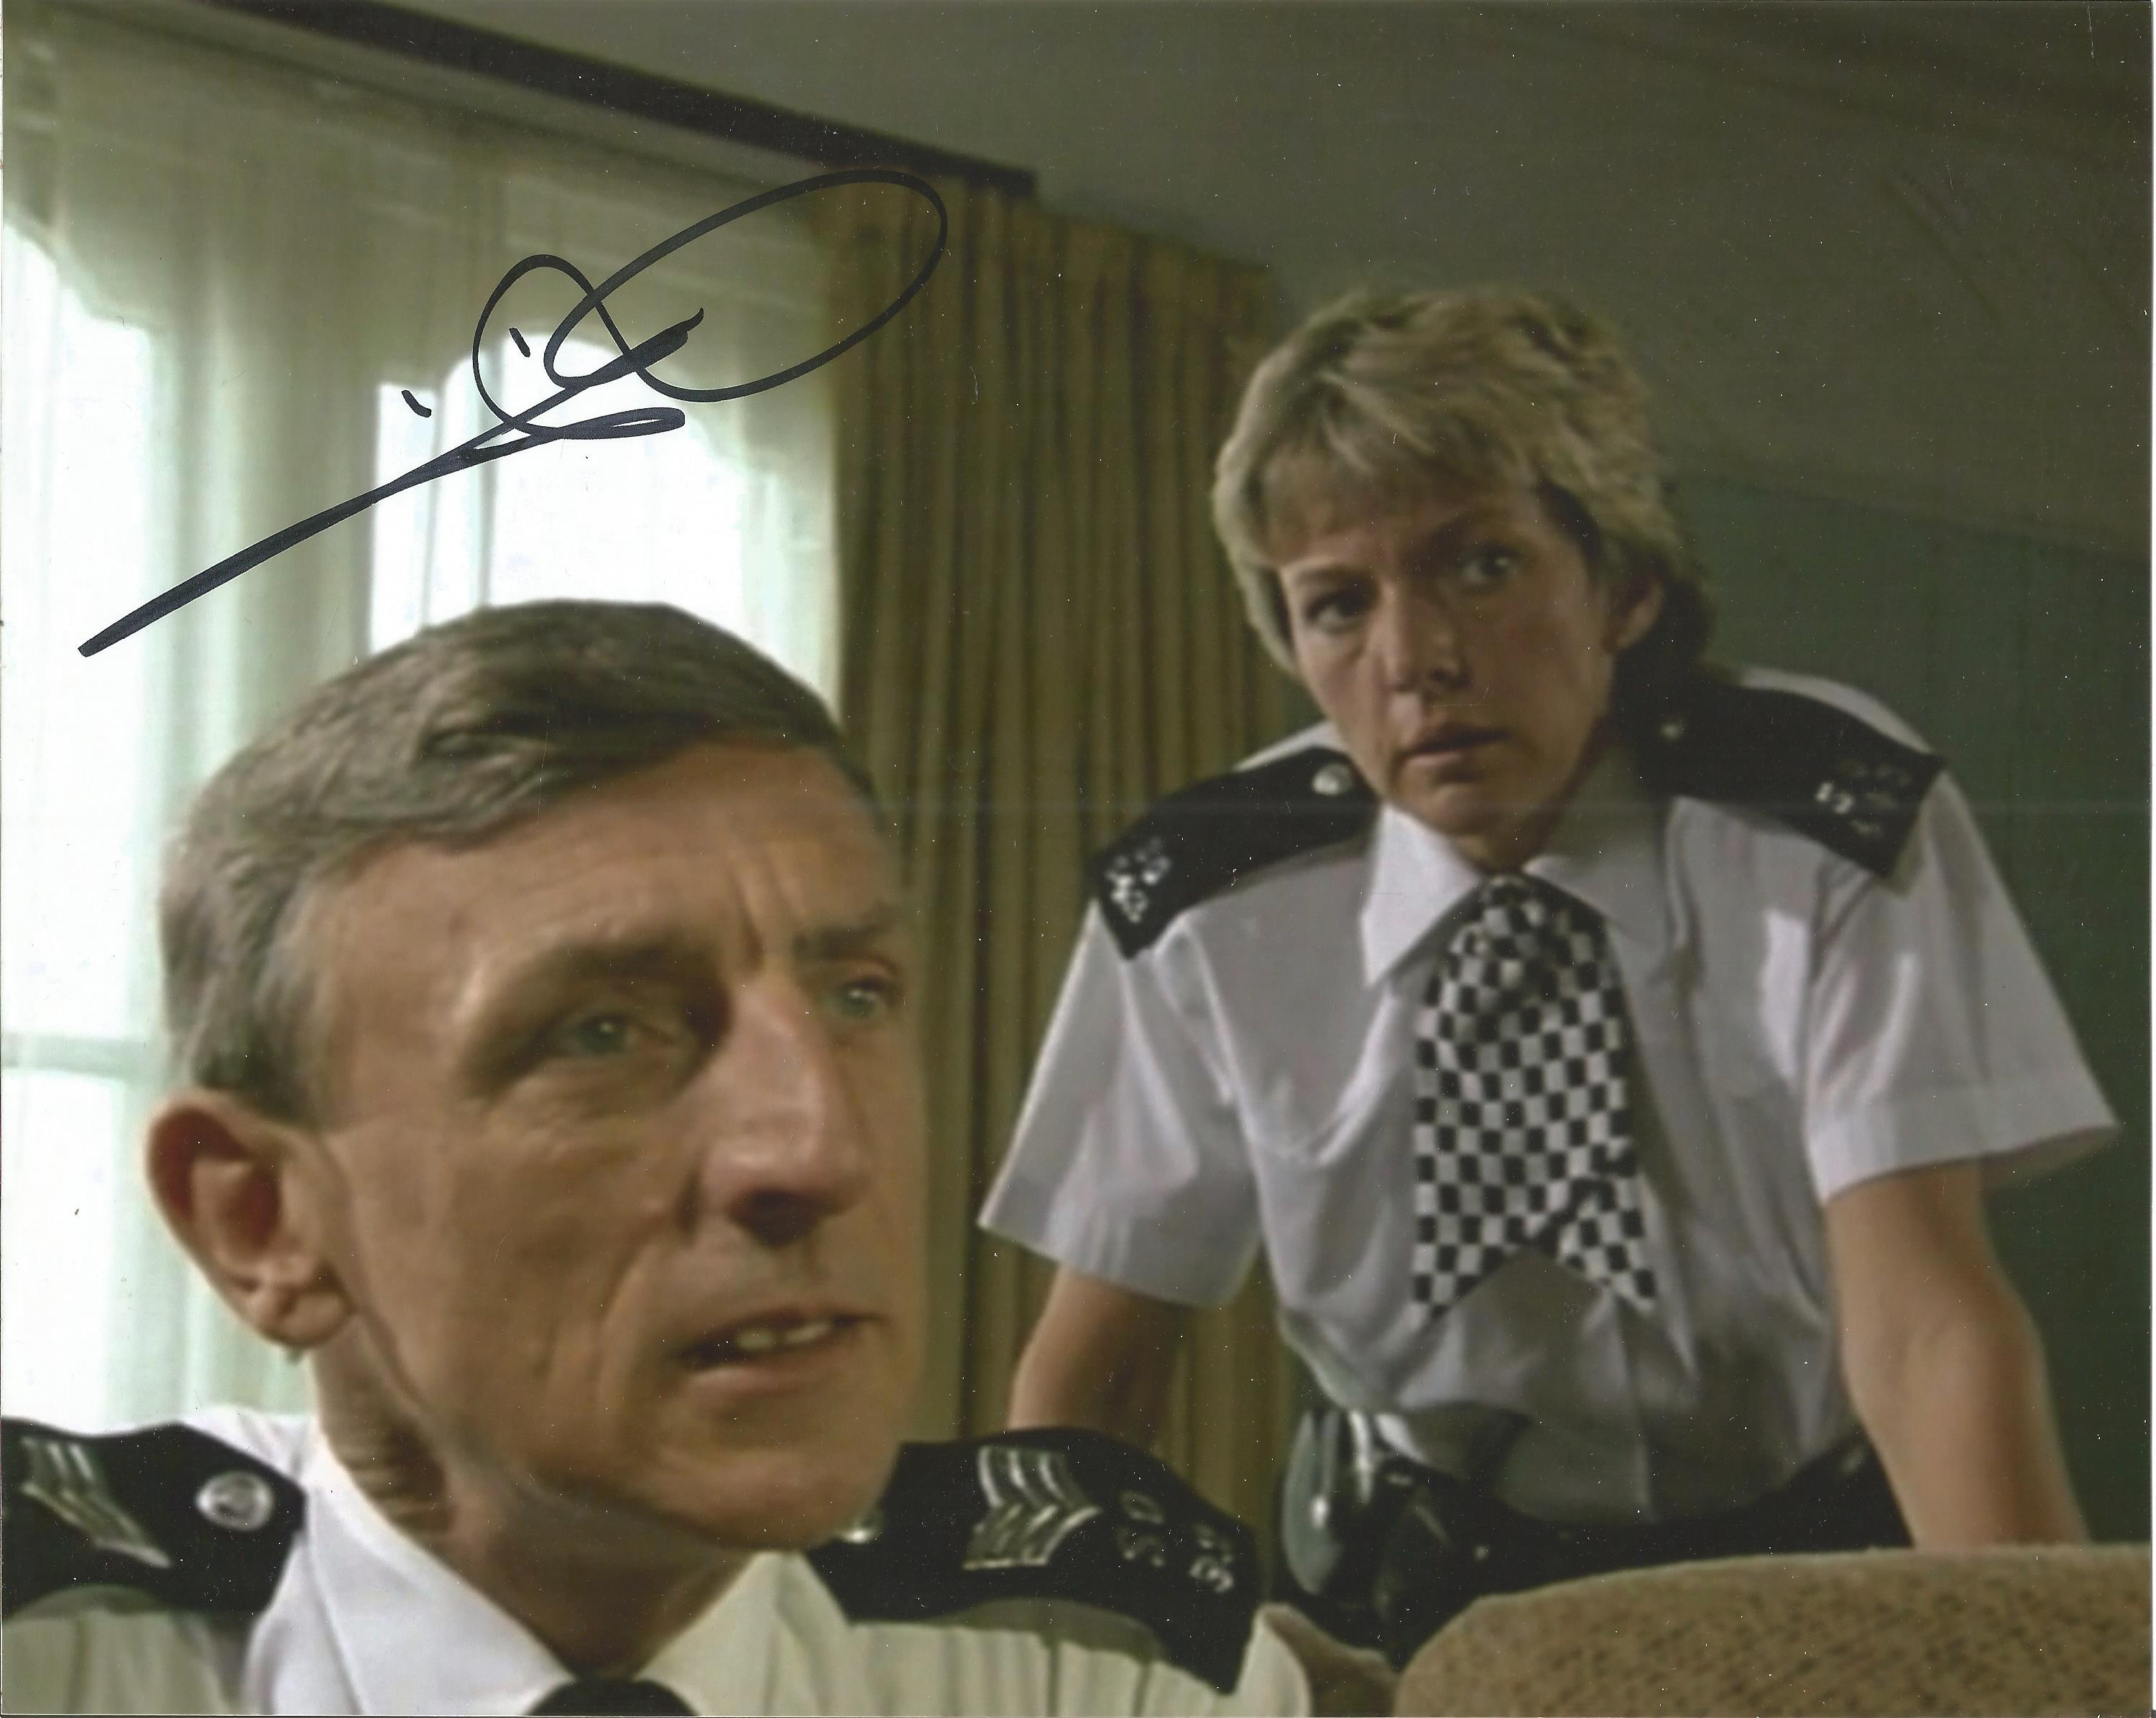 Eric Richard signed 10x8 colour image. Taken from his time on hit British television show The